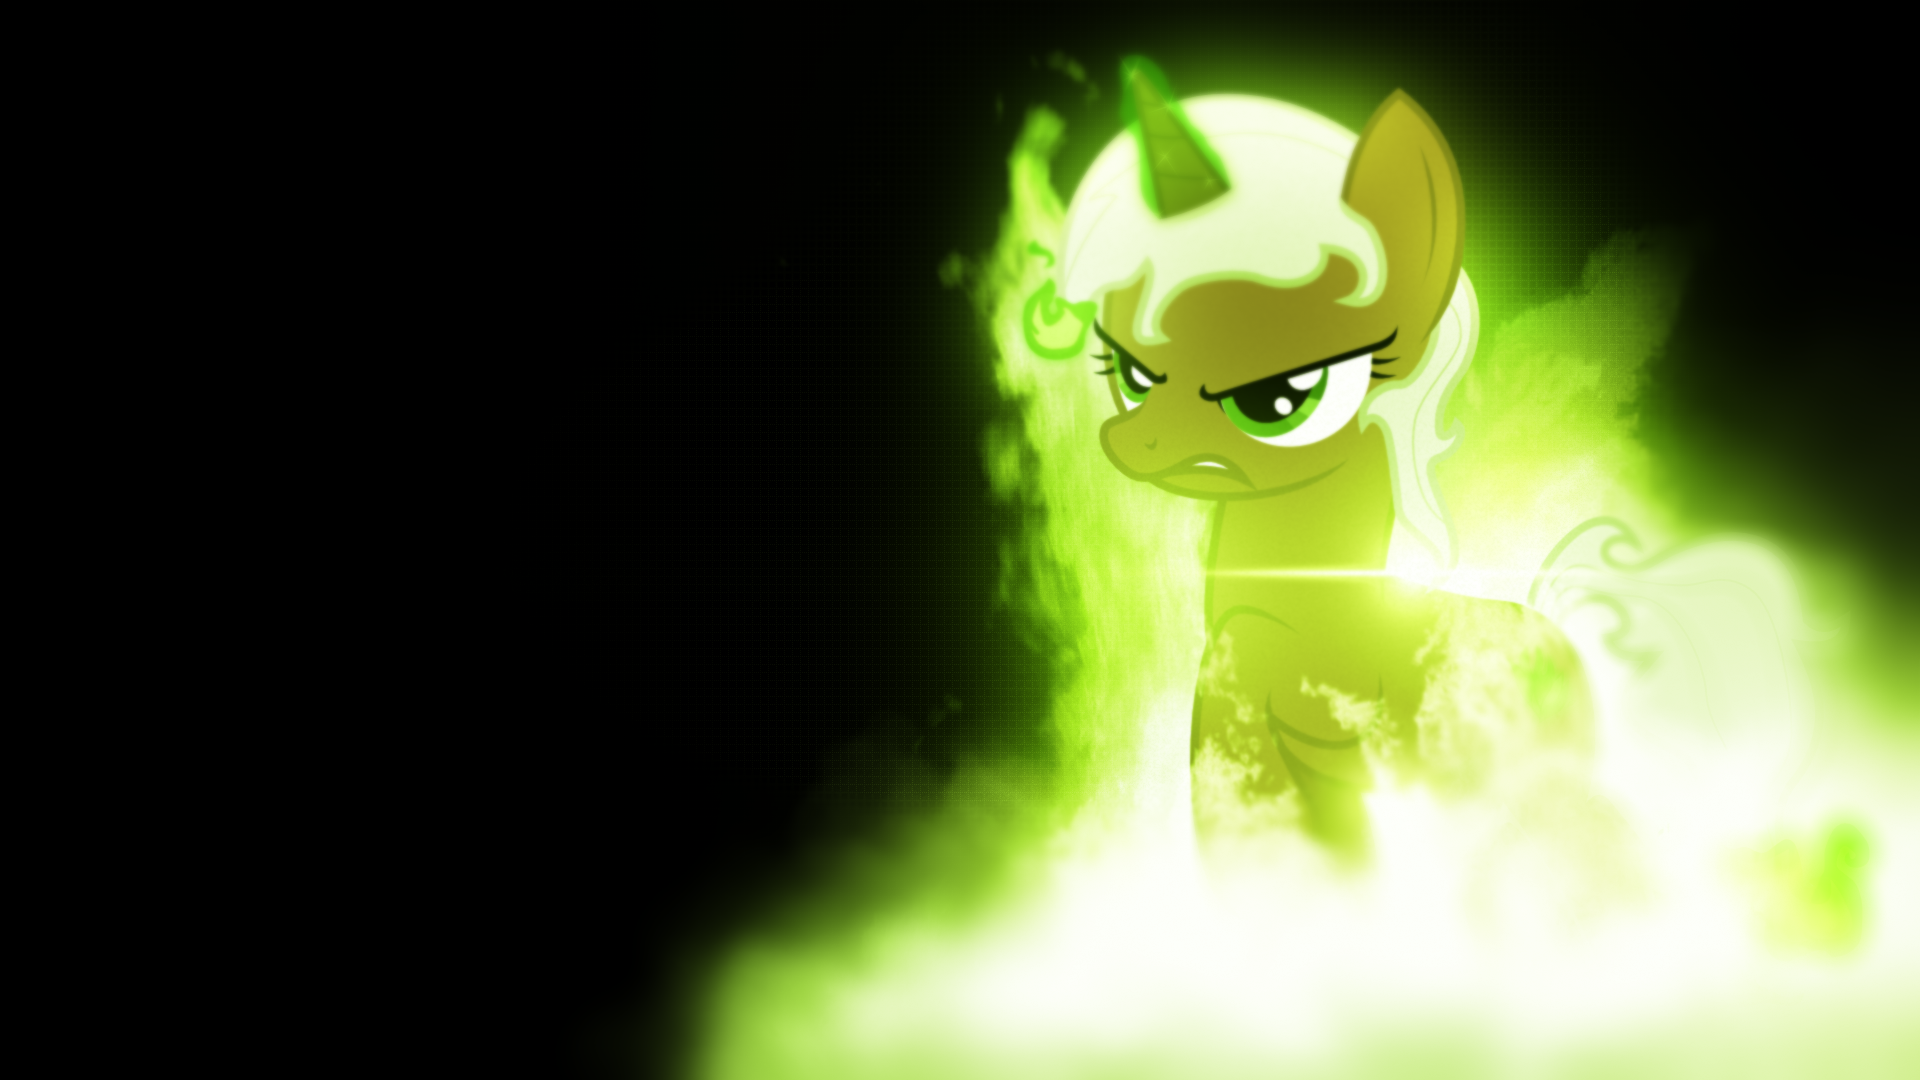 Green Flame Wallpaper Images Pictures   Becuo 1920x1080